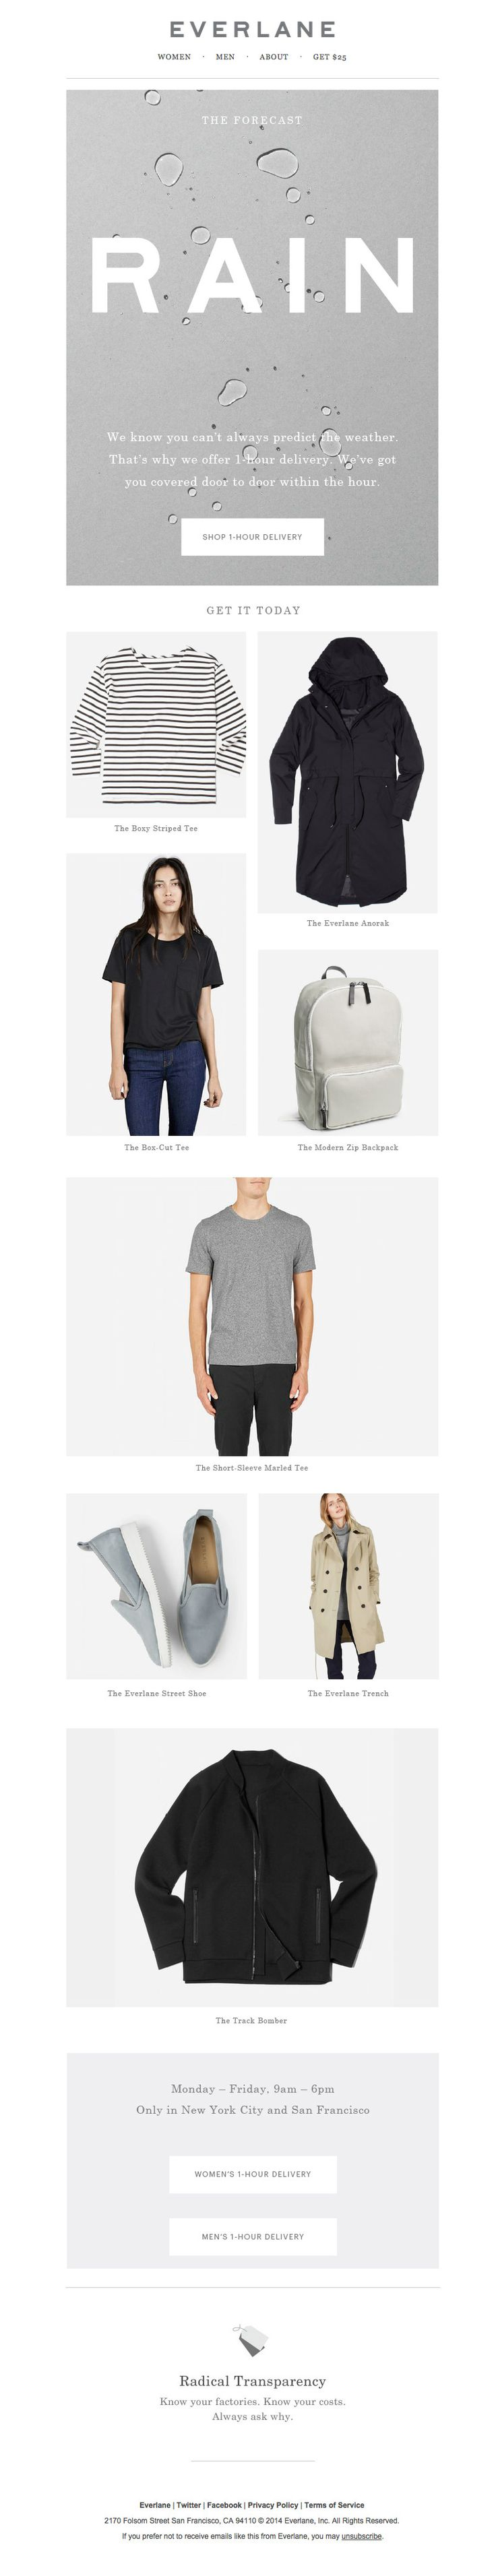 Everlane coupon code